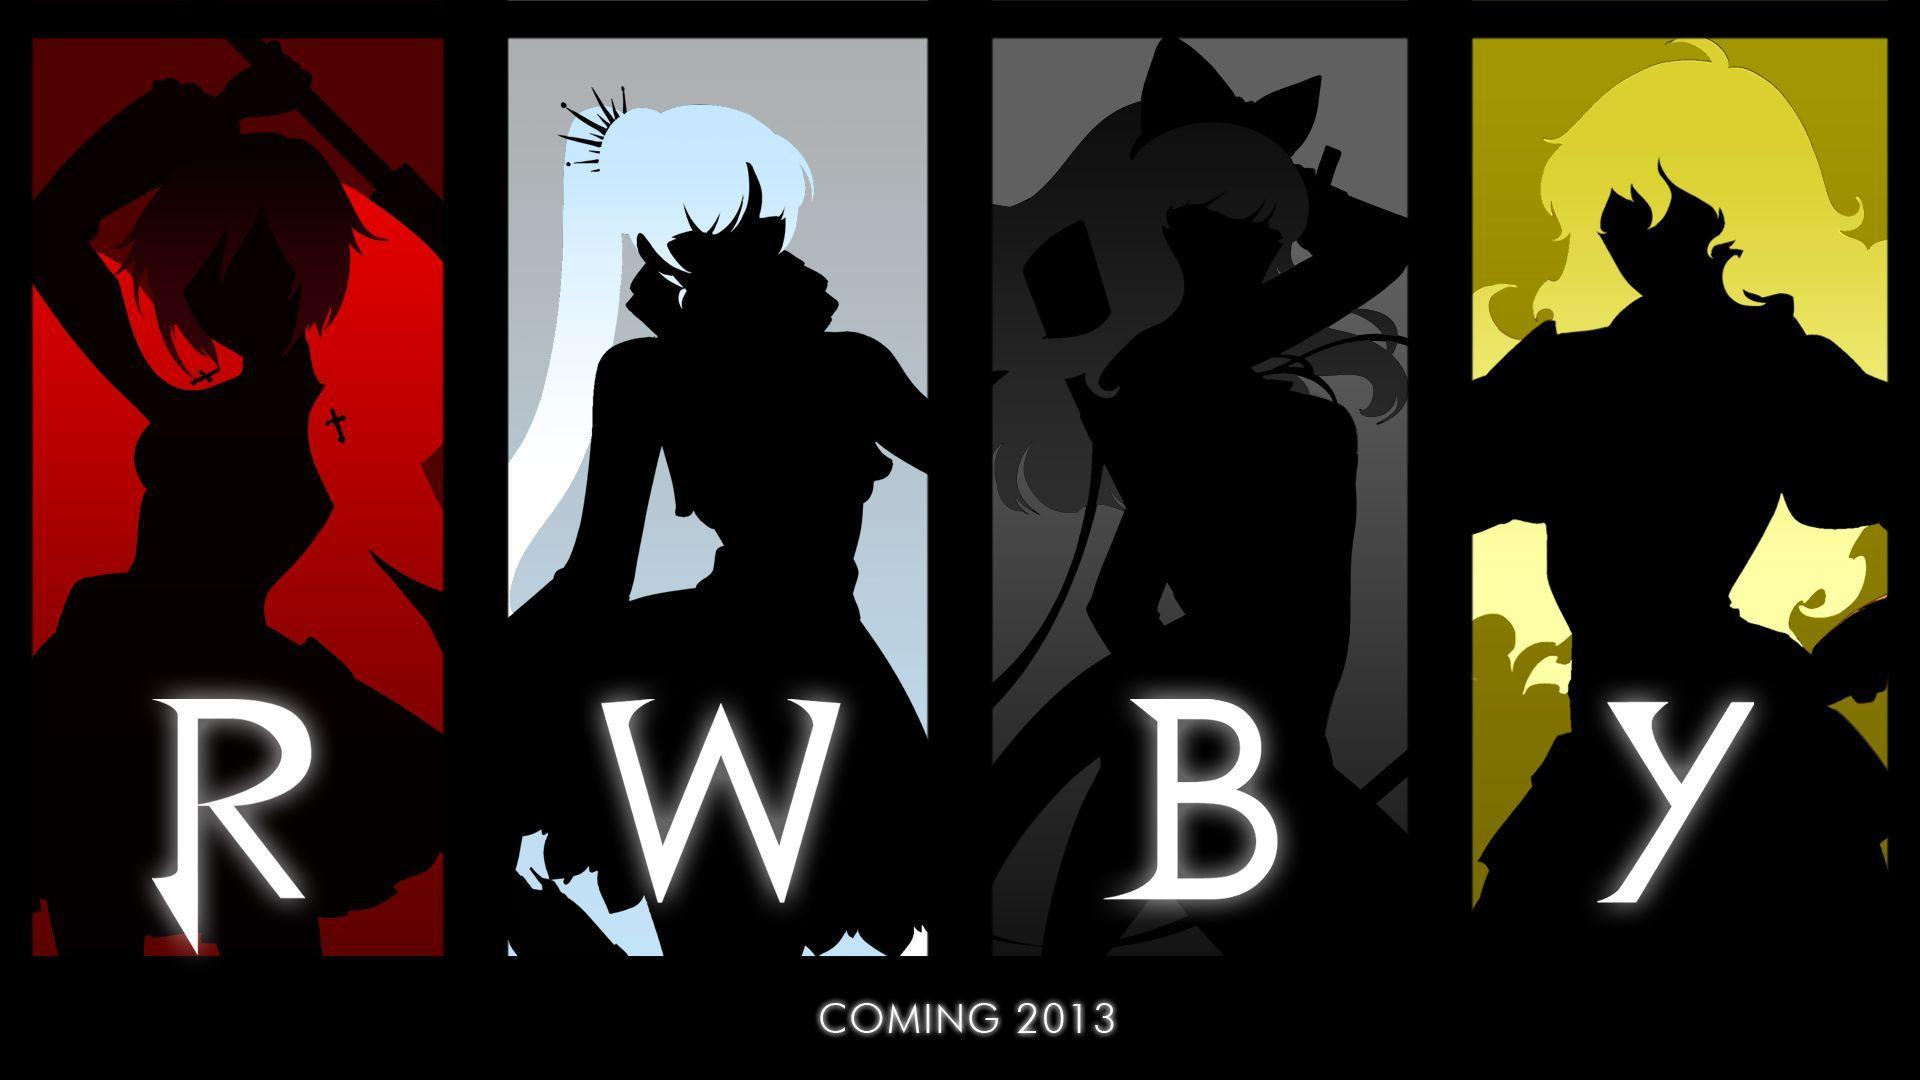 What kind of RWBY character are you?